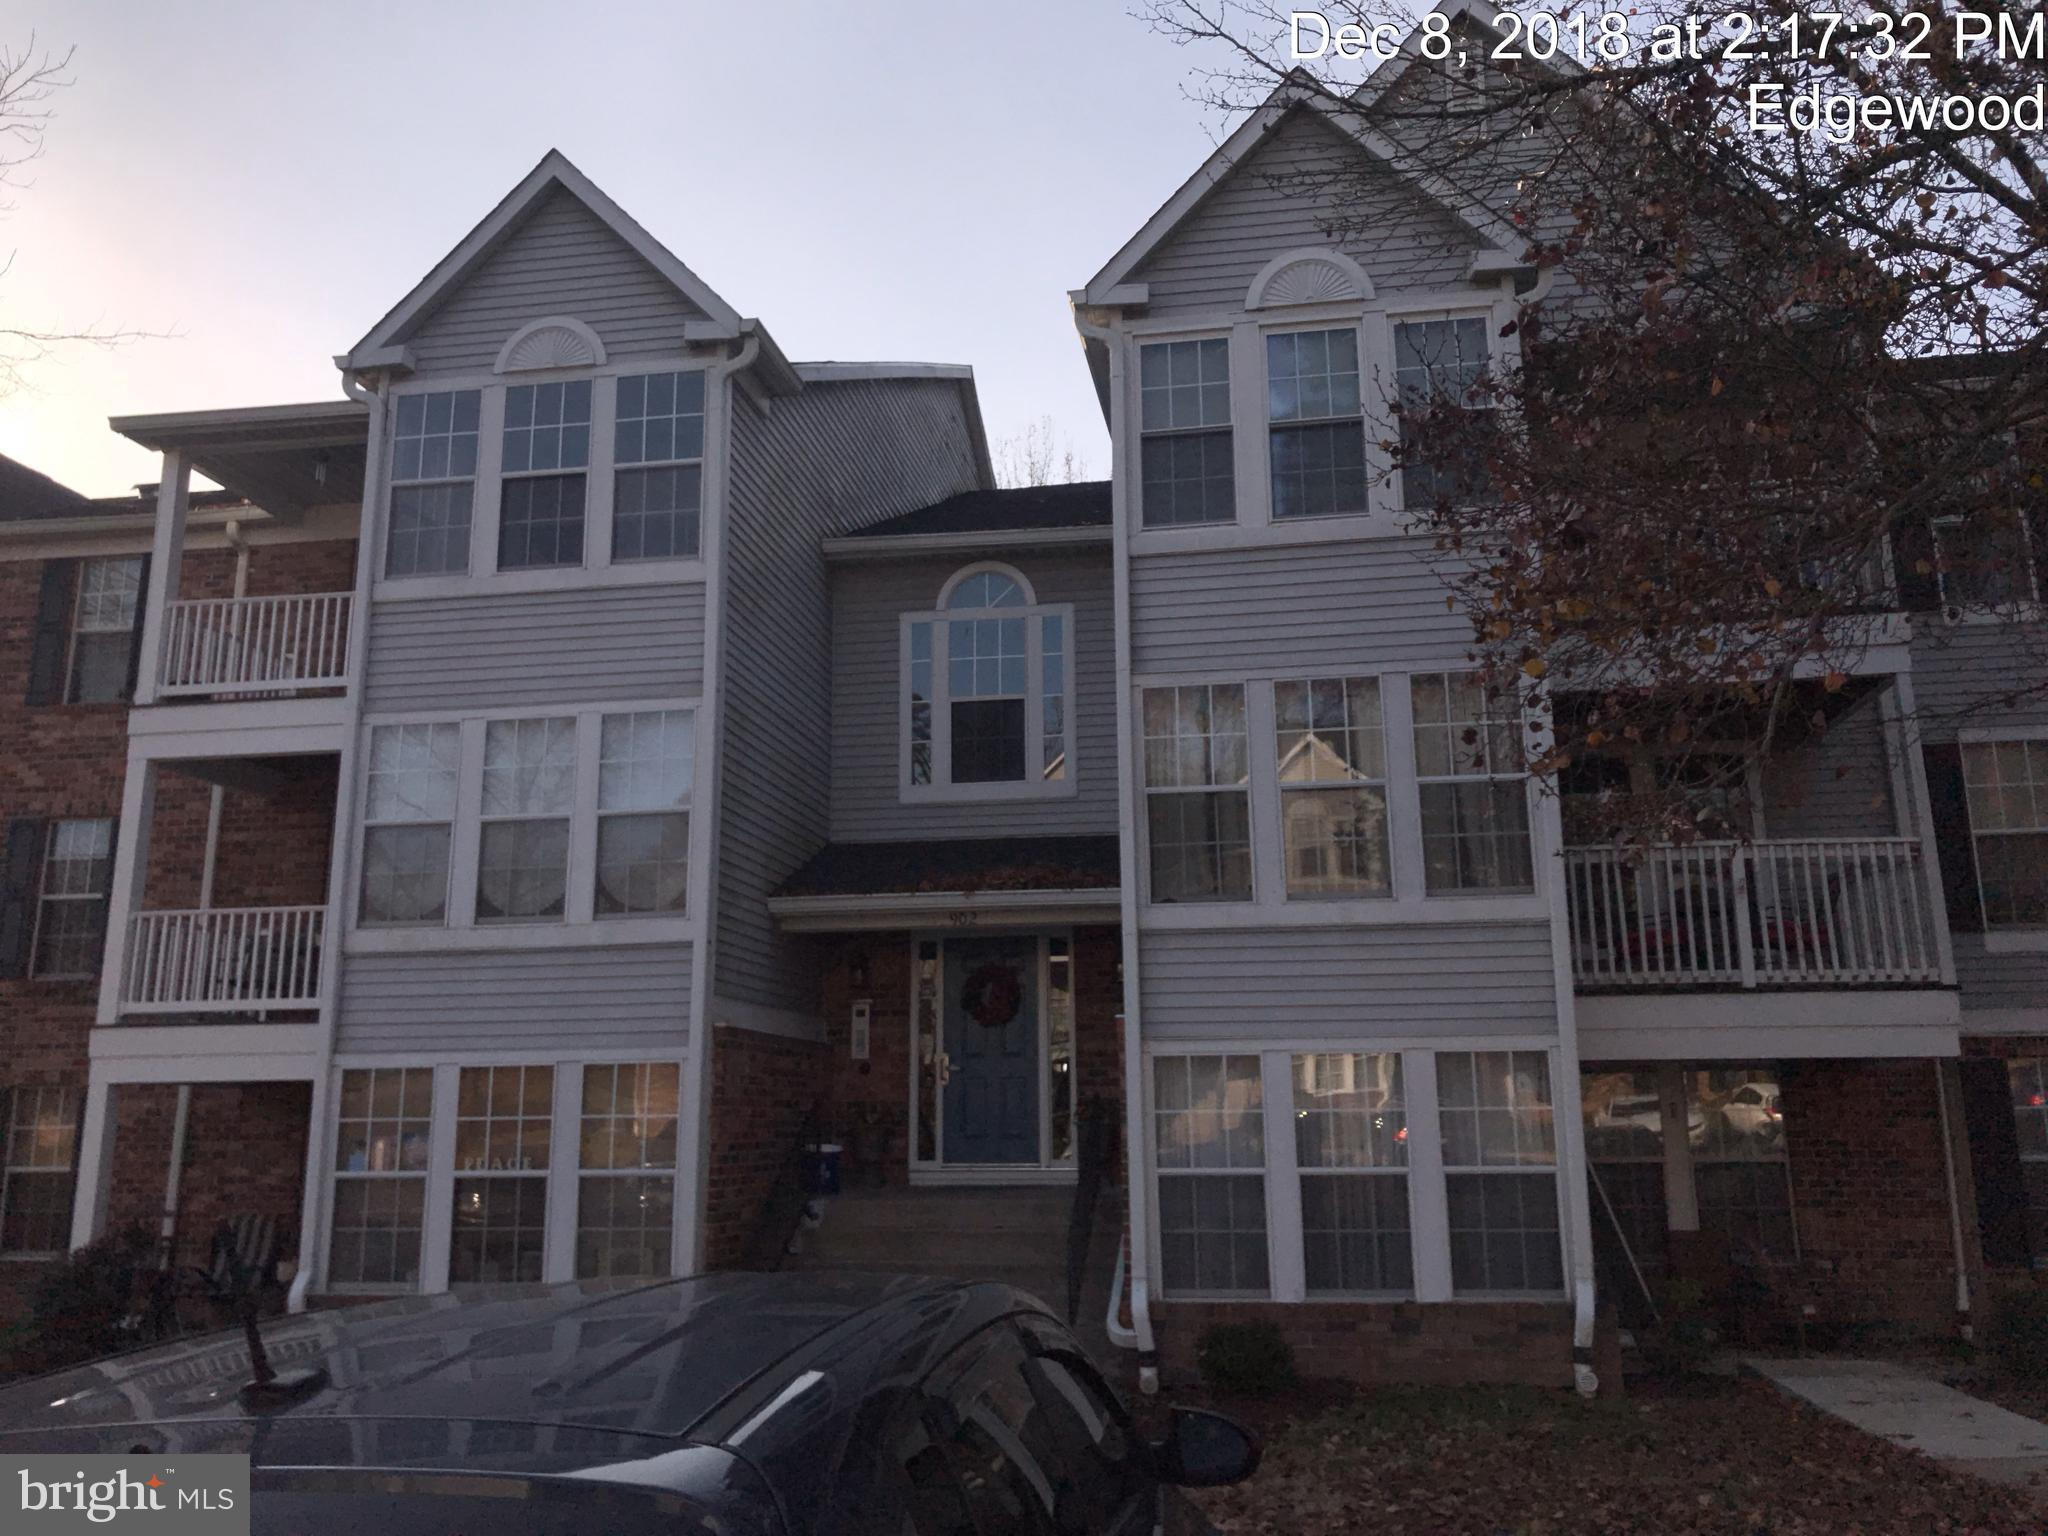 1st floor Condo with front and rear entrance. Rear patio and backs to woods. 2 bedroom, 1 bath with large living room and separate dining/sun room. Kitchen counter/bar space. Close to I95, shopping, APG, work and water for boating!